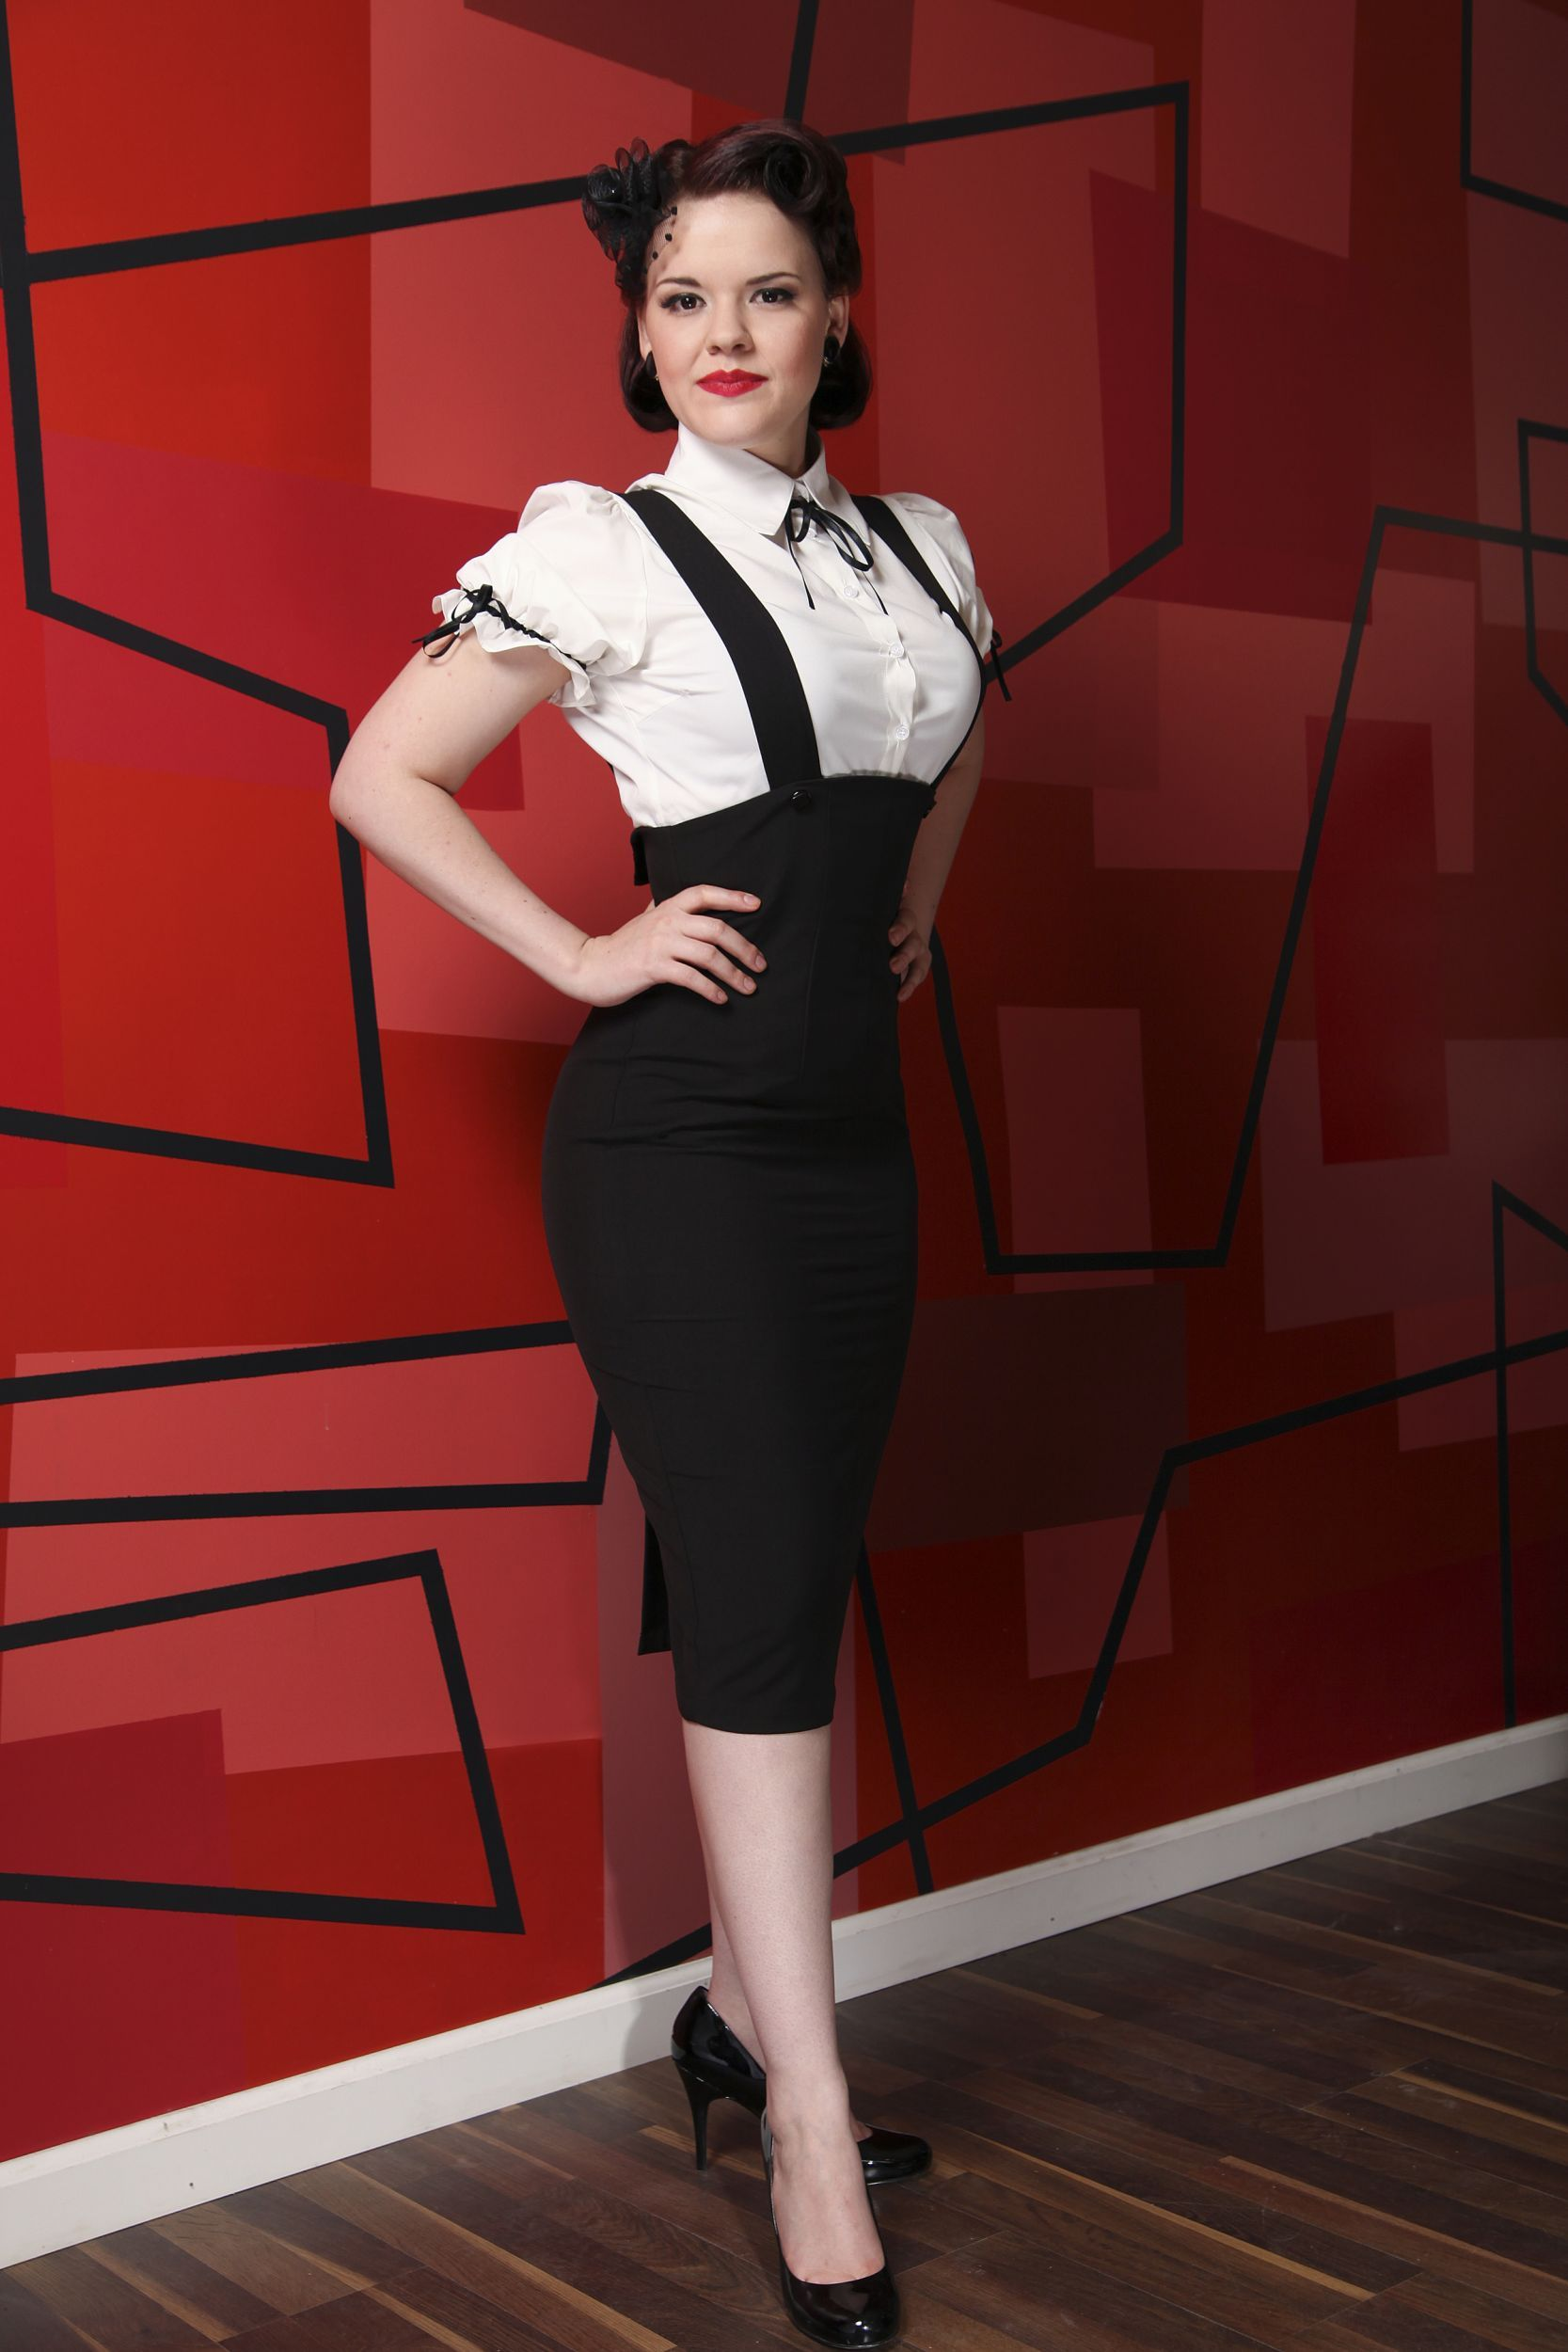 d35d88cd94 Jumper Black Pencil | Bettie Page Clothing Always wanted a pencil skirt  like this